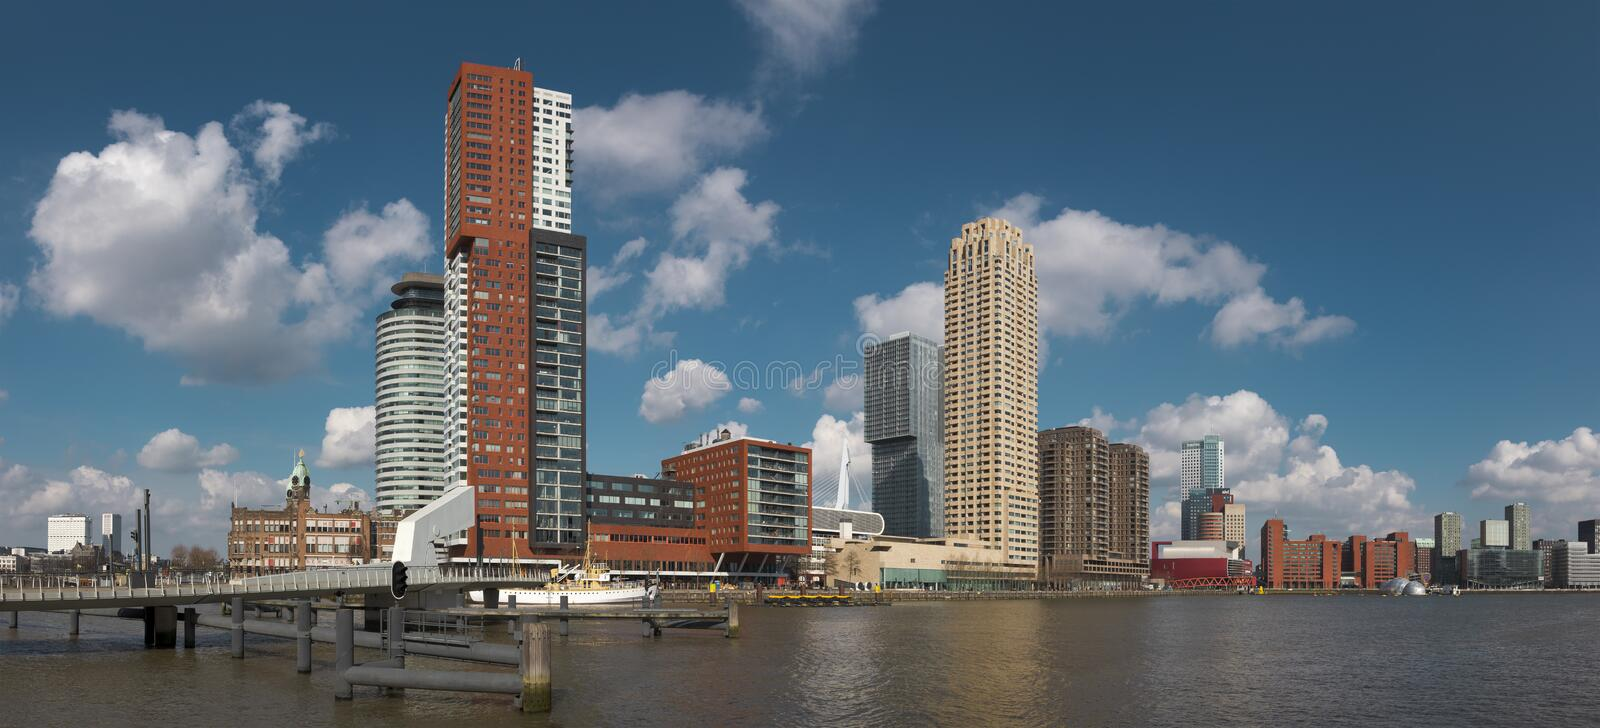 Rotterdam, The Netherlands, march 2020: panoramic view of the Rotterdam skyline at the Rijnhaven, beautiful sunny day. Panorama royalty free stock photo